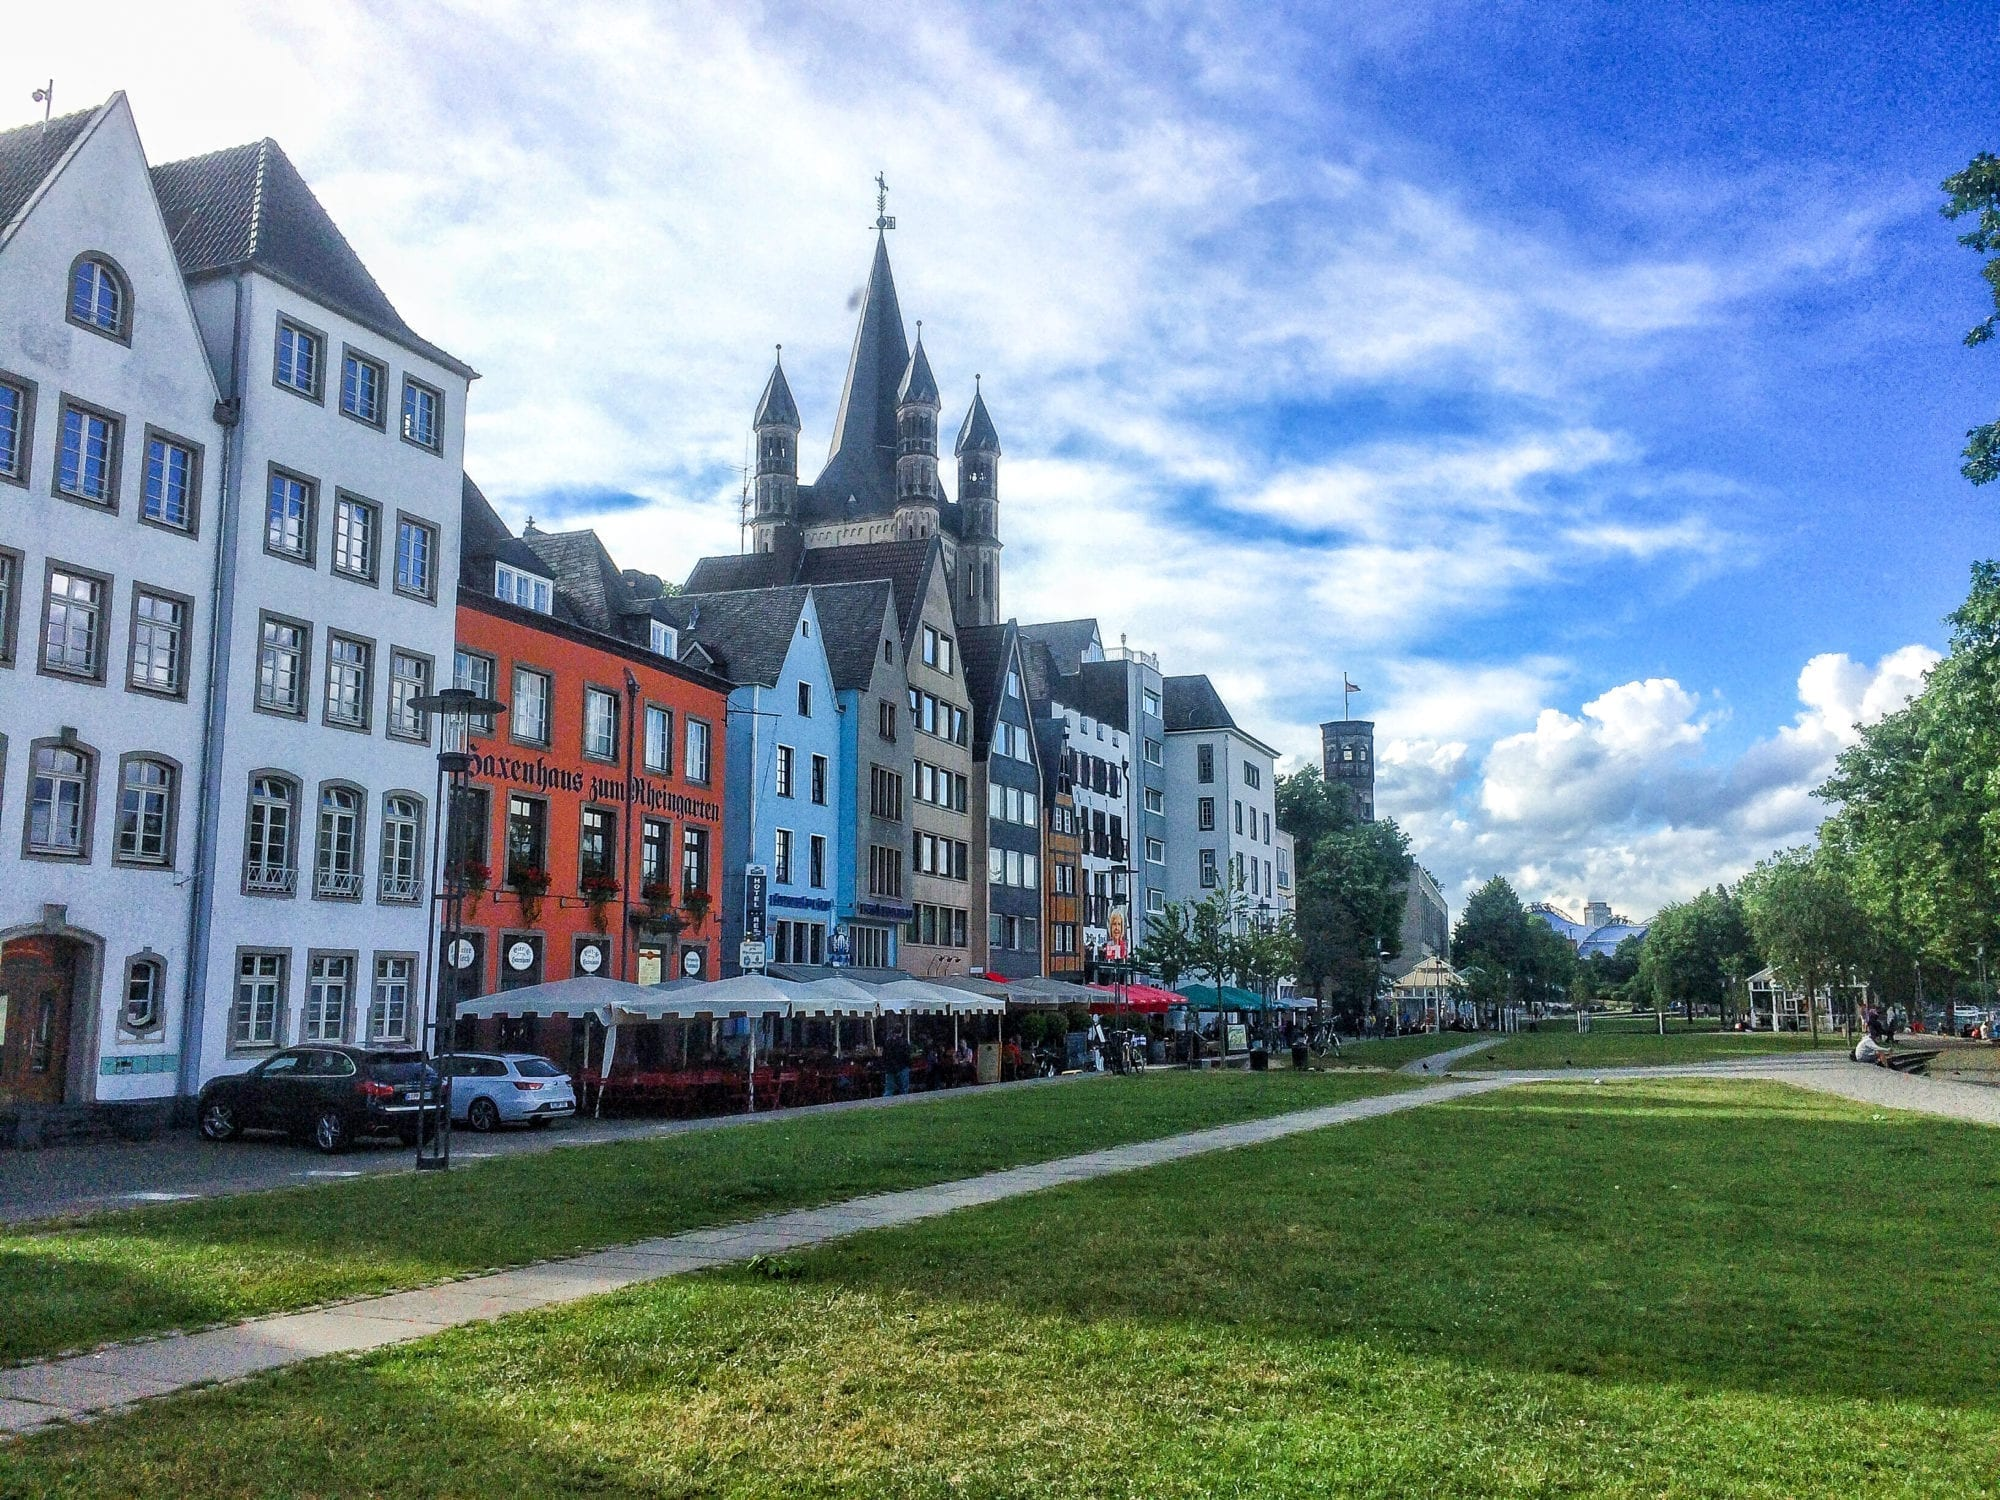 Weekend Getaway: Explore the Urban City Life of Cologne